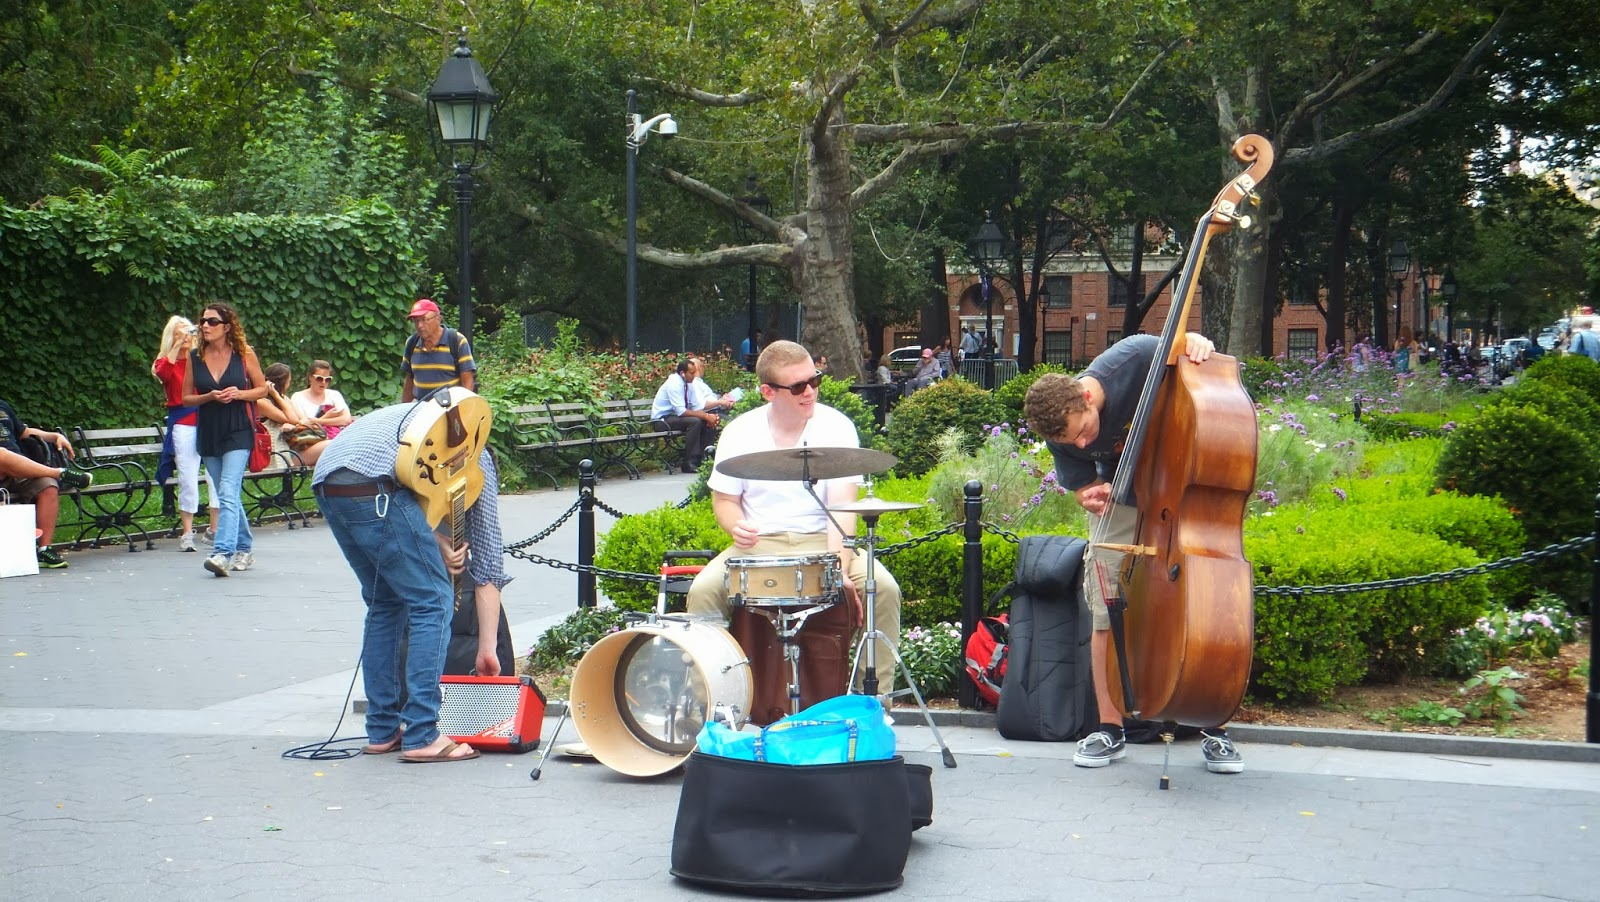 Washington Square Park, super agradable